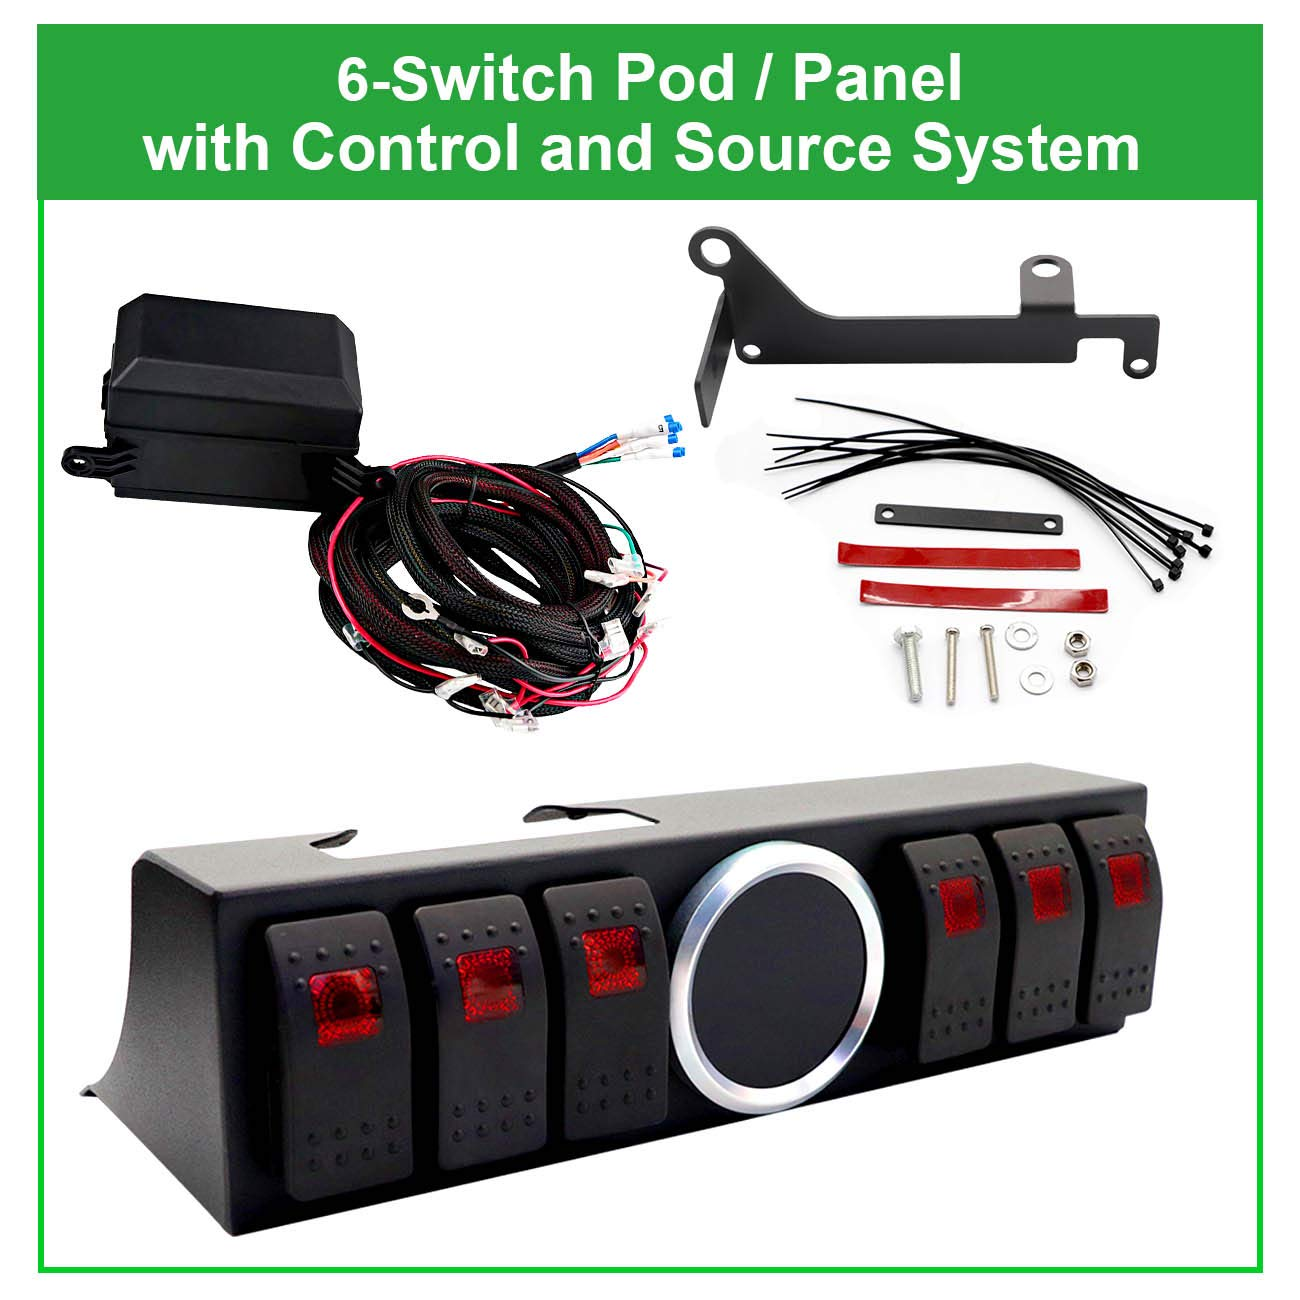 WATERWICH 6-Switch Pod Toggle Switch Panel Overhead and Source Control System Box Wiring Harness Kit with 12 Switch Covers /& a Switch Clip Remover for Jeep Wrangle Red